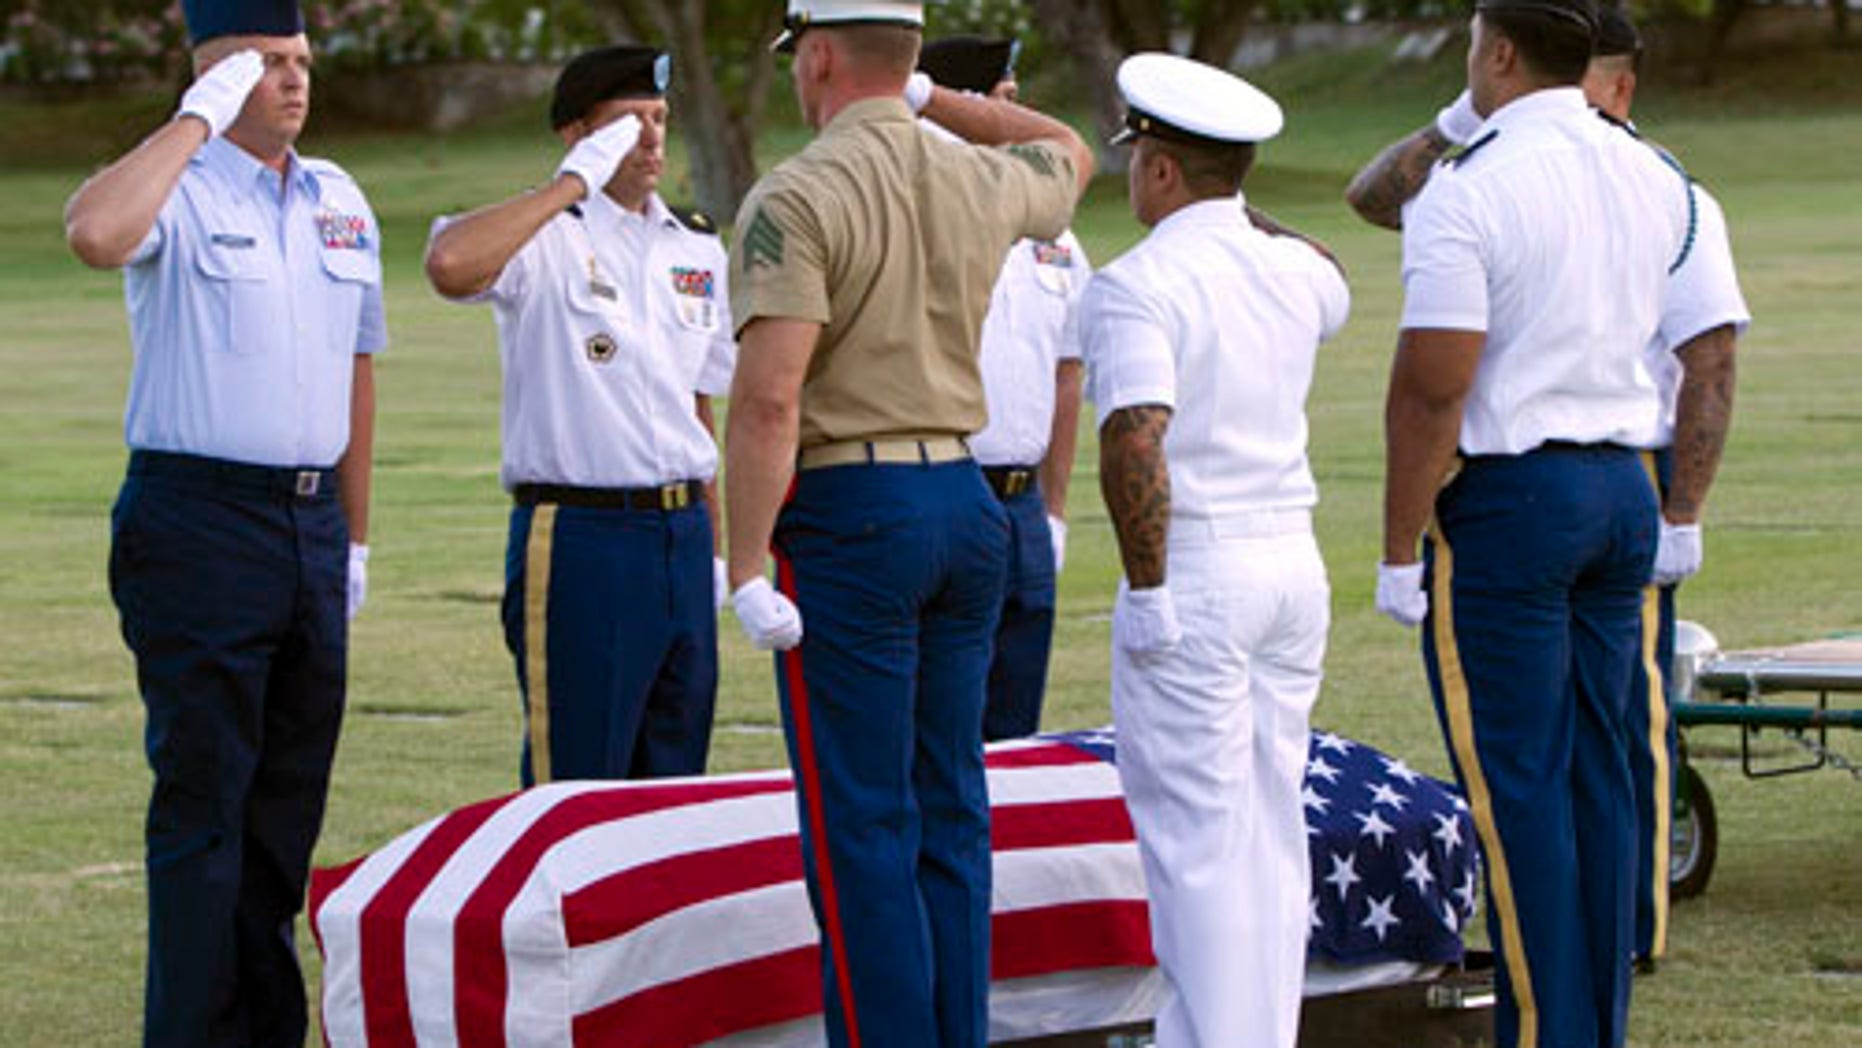 In this photo taken July 27, 2015, in Honolulu, military pallbearers salute over the exhumed remains of unidentified crew members of the USS Oklahoma killed in the Dec. 7, 1941, bombing of Pearl Harbor. The military says it has identified the remains of seven crew members missing since the Oklahoma capsized in the bombing. (AP Photo/Marco Garcia)